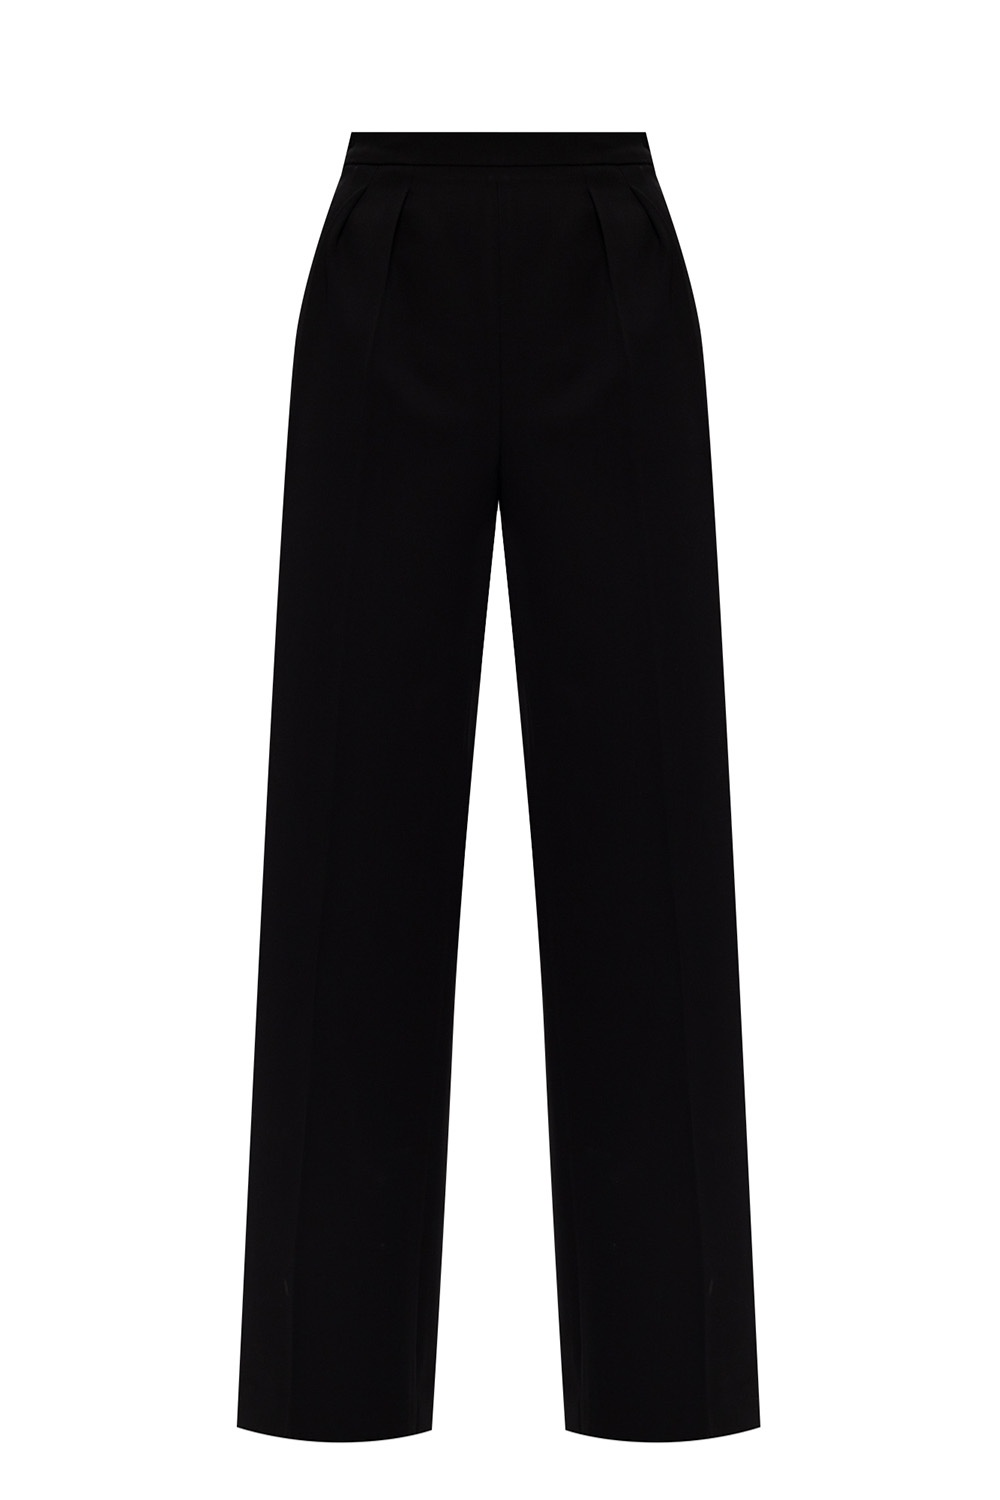 Alaia Pleat-front trousers